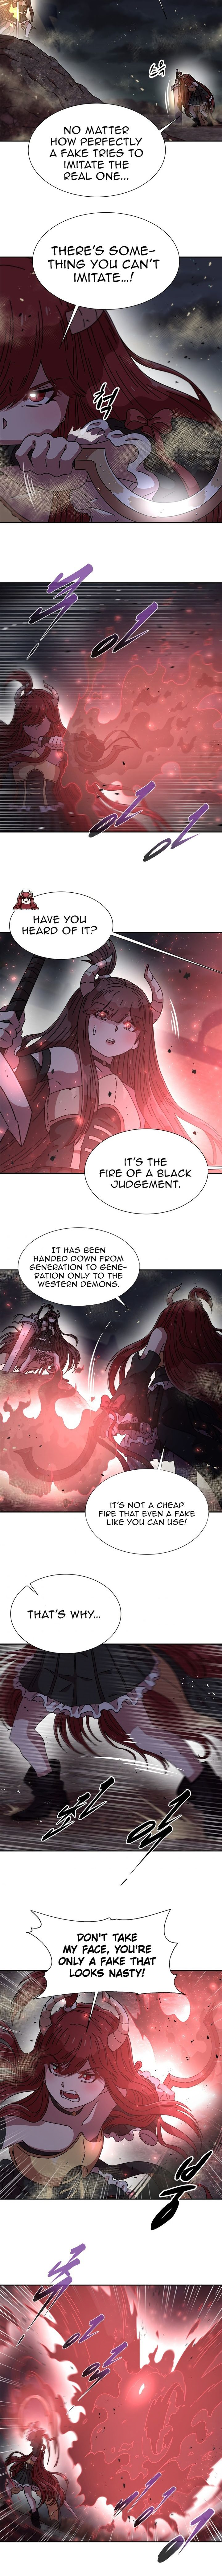 i_was_born_as_the_demon_lords_daughter_54_5